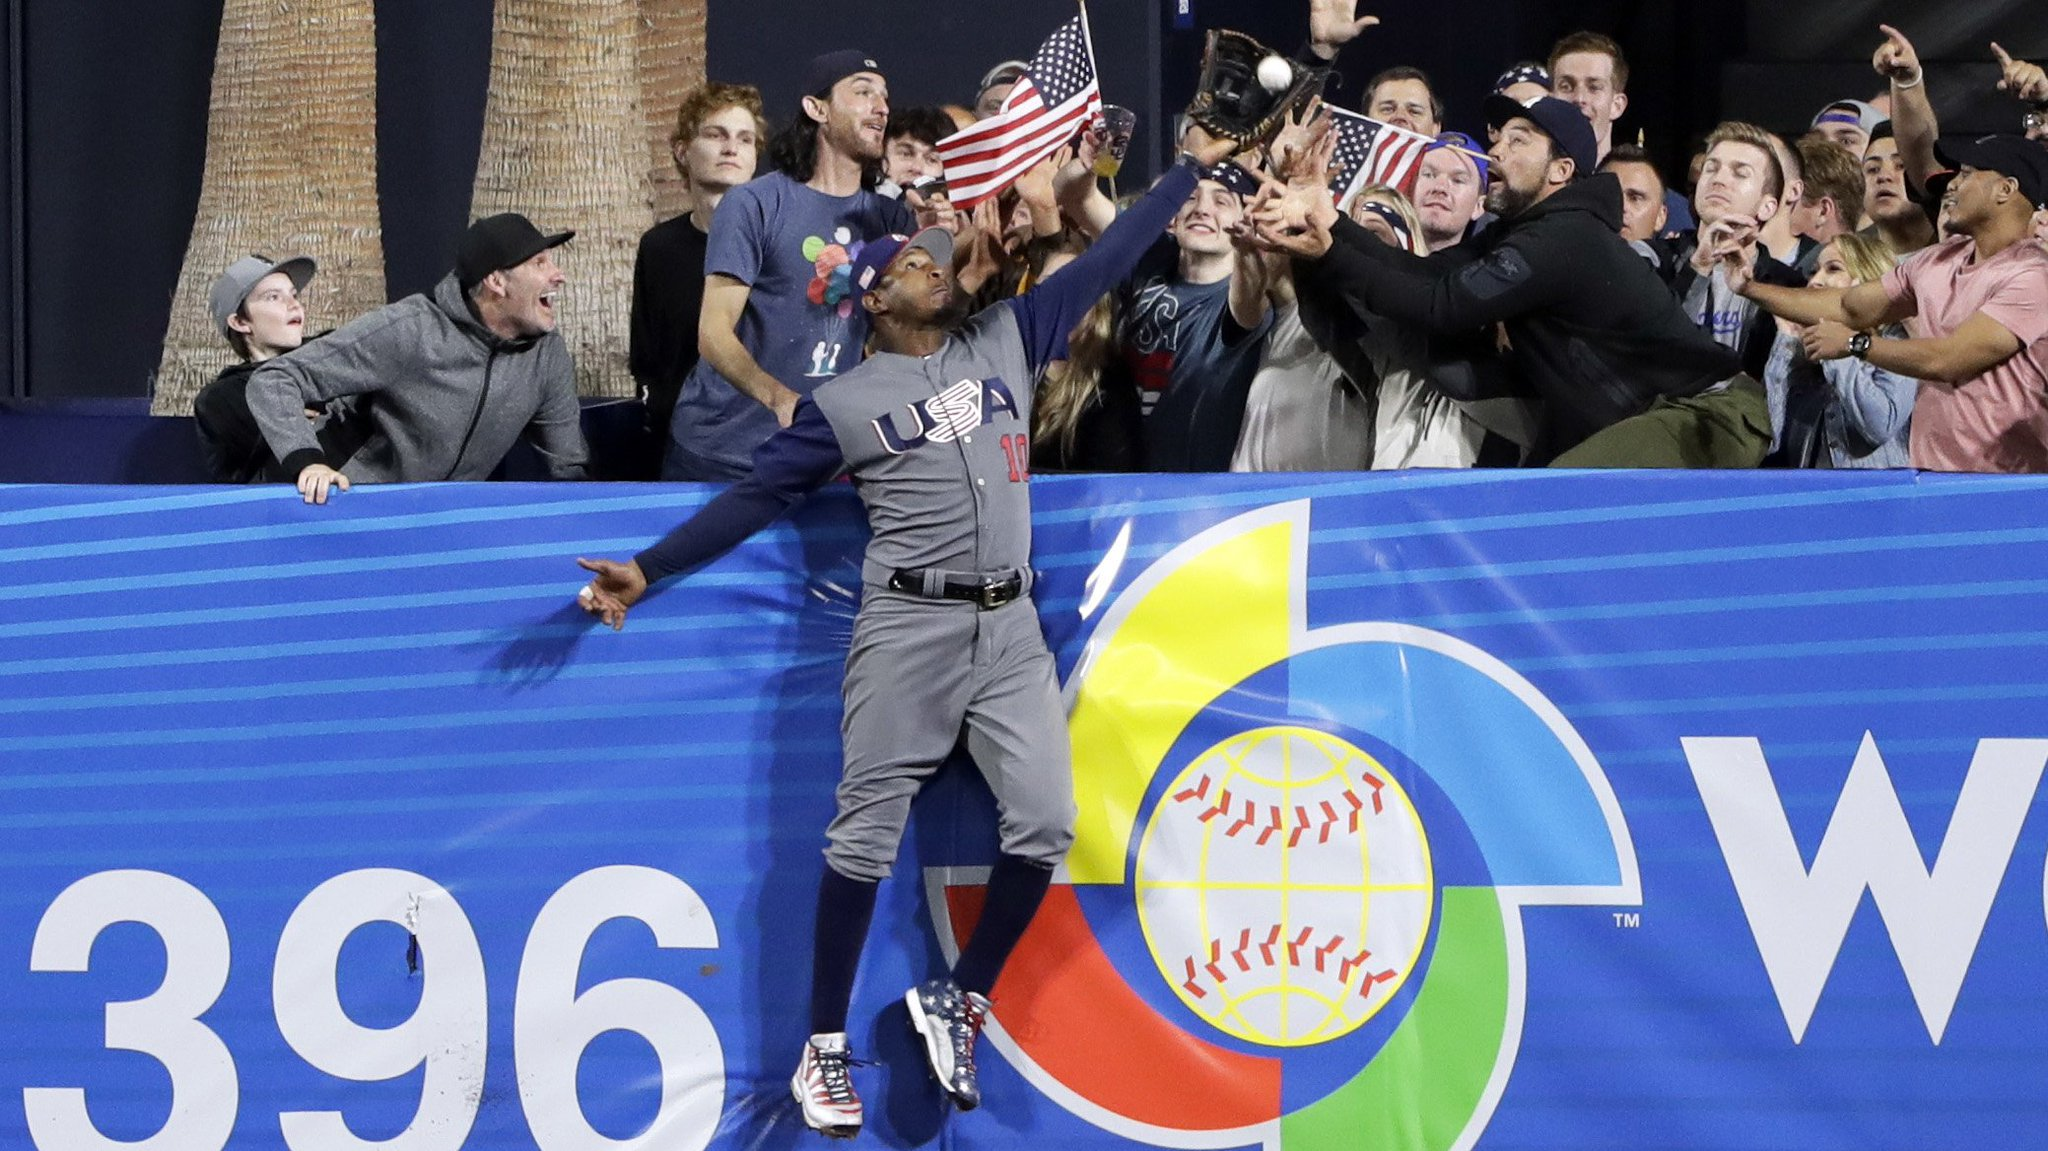 One year ago, @SimplyAJ10 saved the day for Team USA. https://t.co/jVXOiWqO5l https://t.co/EA5556iFmD